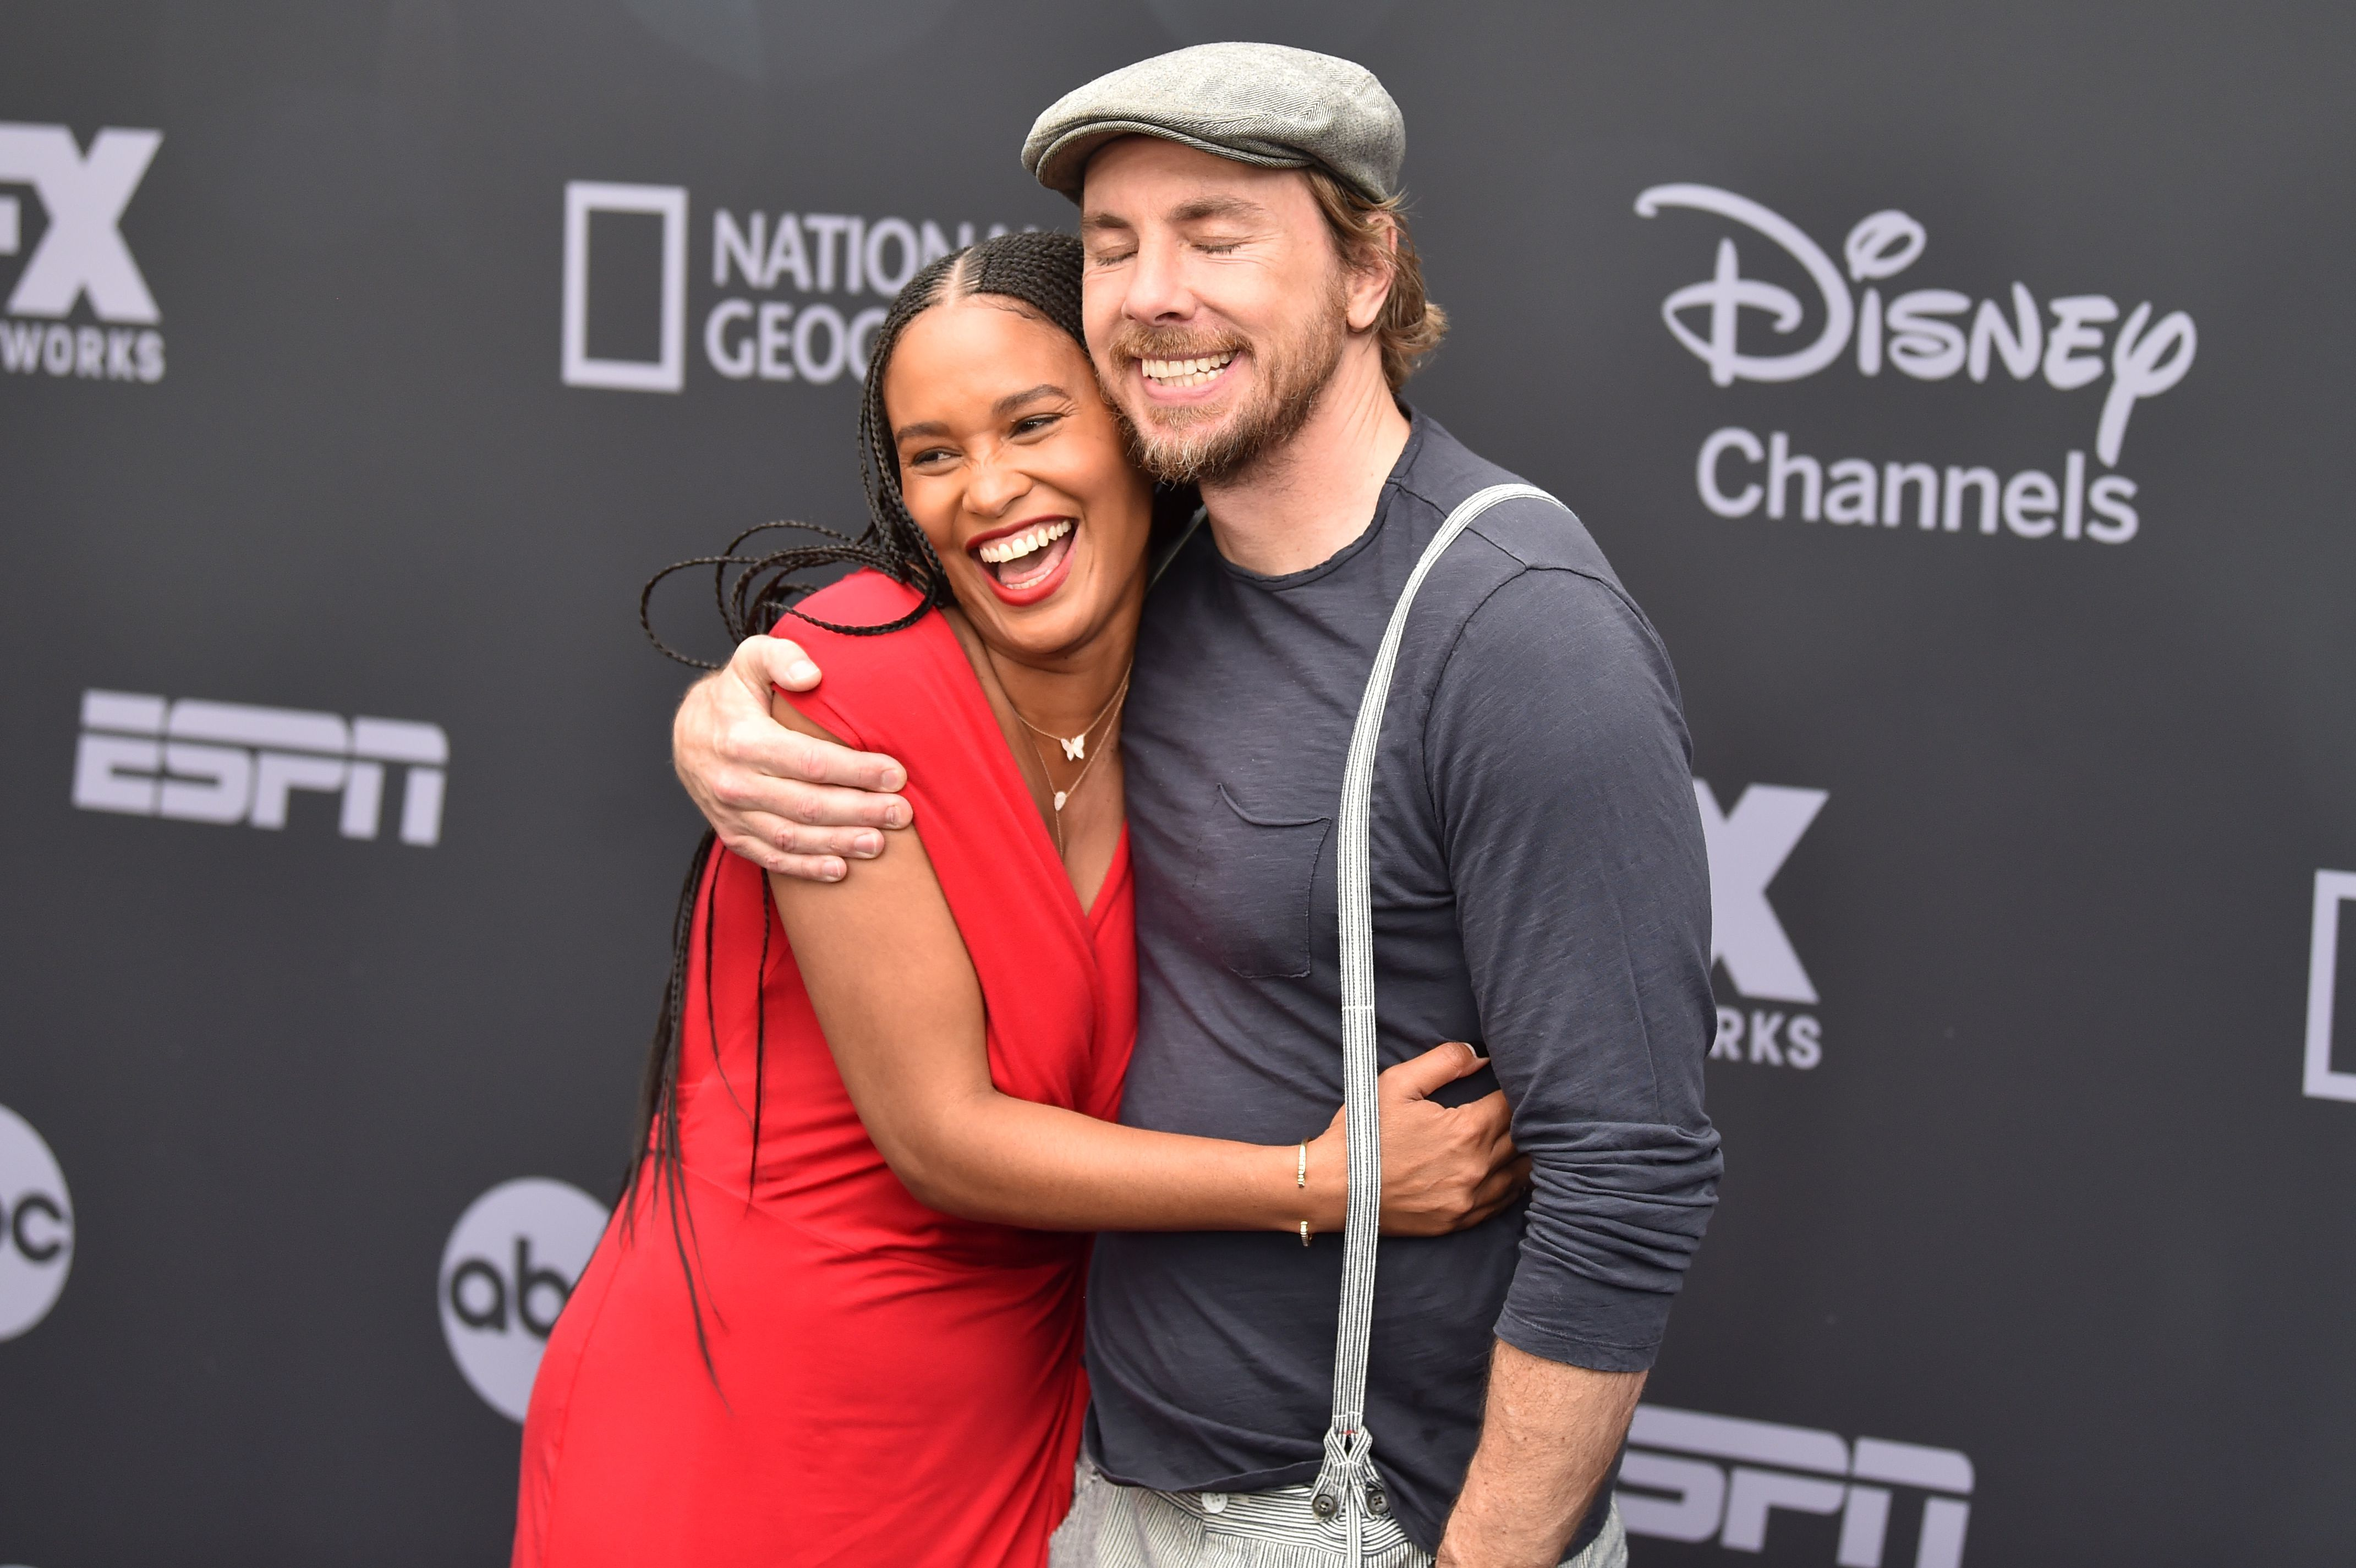 Joy Bryant and Dax Shepard attend the Walt Disney Television Upfront Presentation in New York City on May 14, 2019.